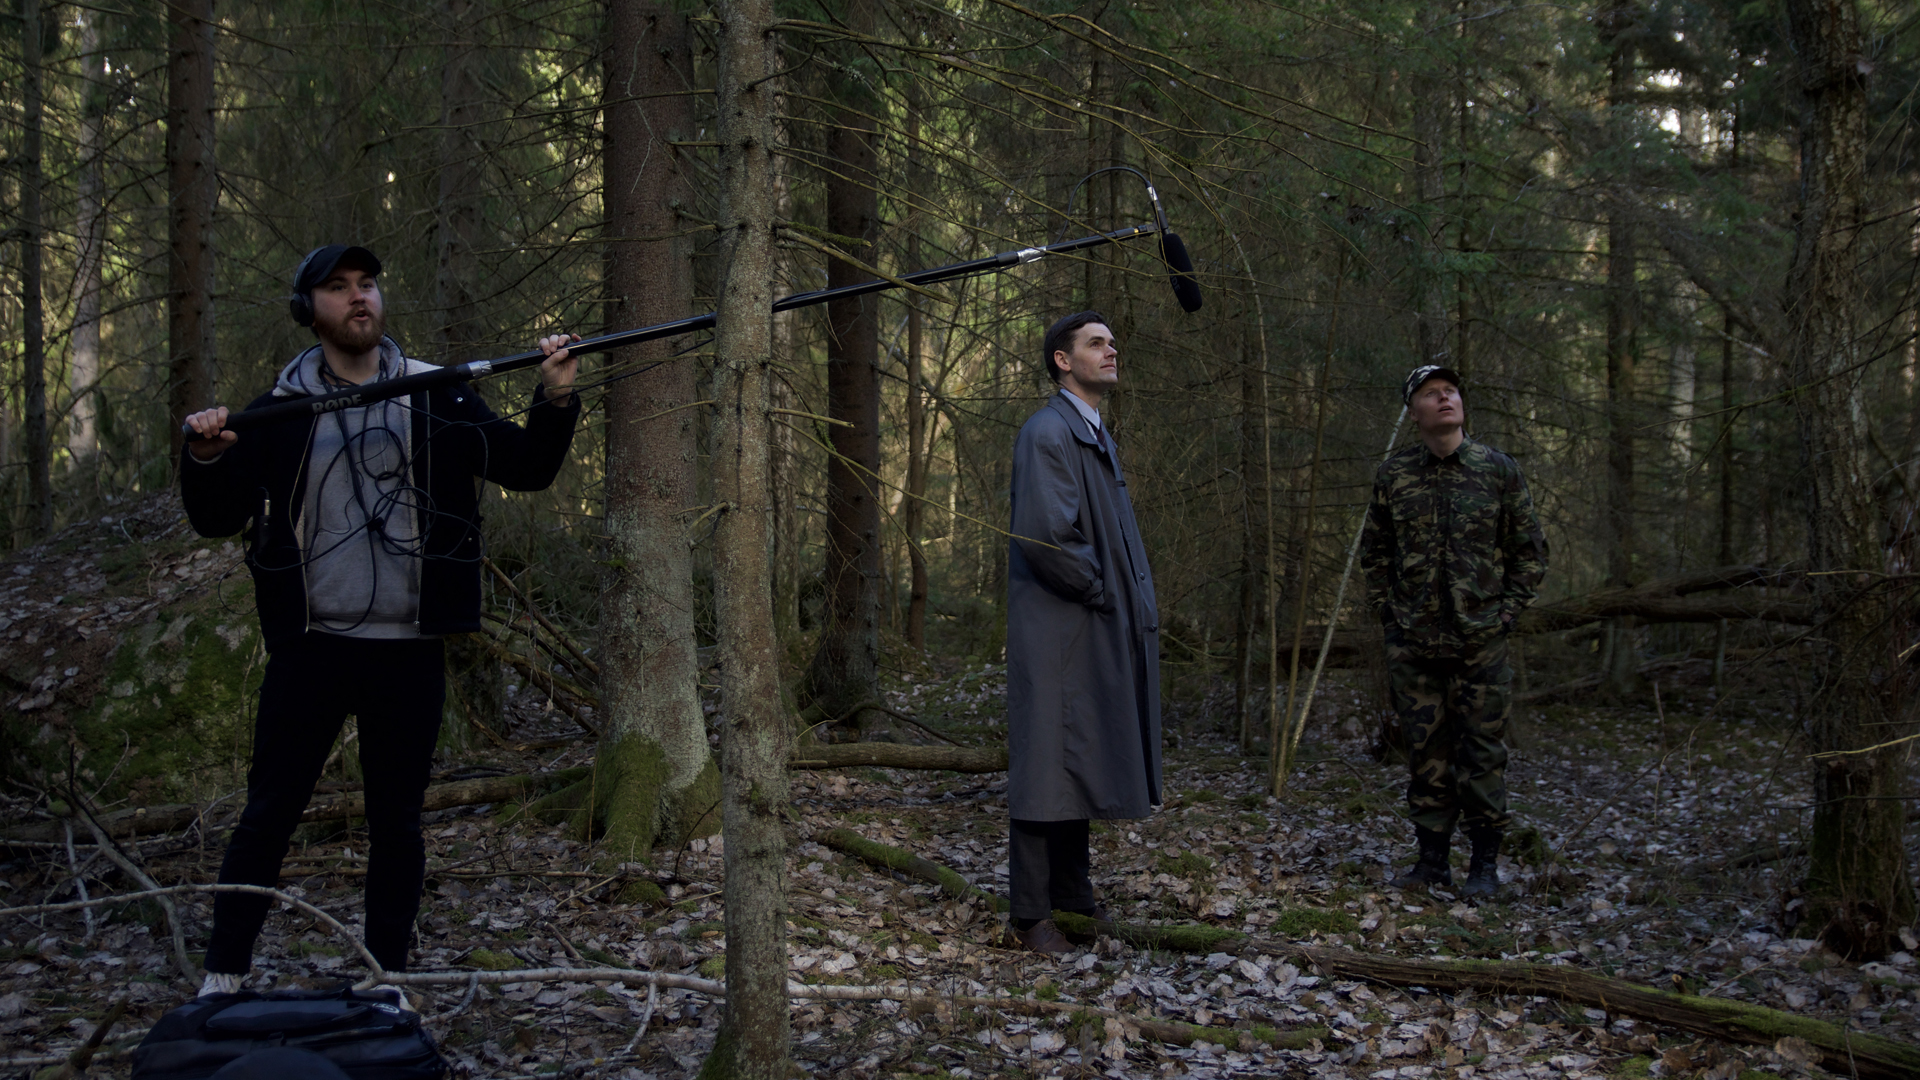 Actors Magnus af Sandeberg and Dennis Tapio together with boom operator sound mixer Elias Ehres